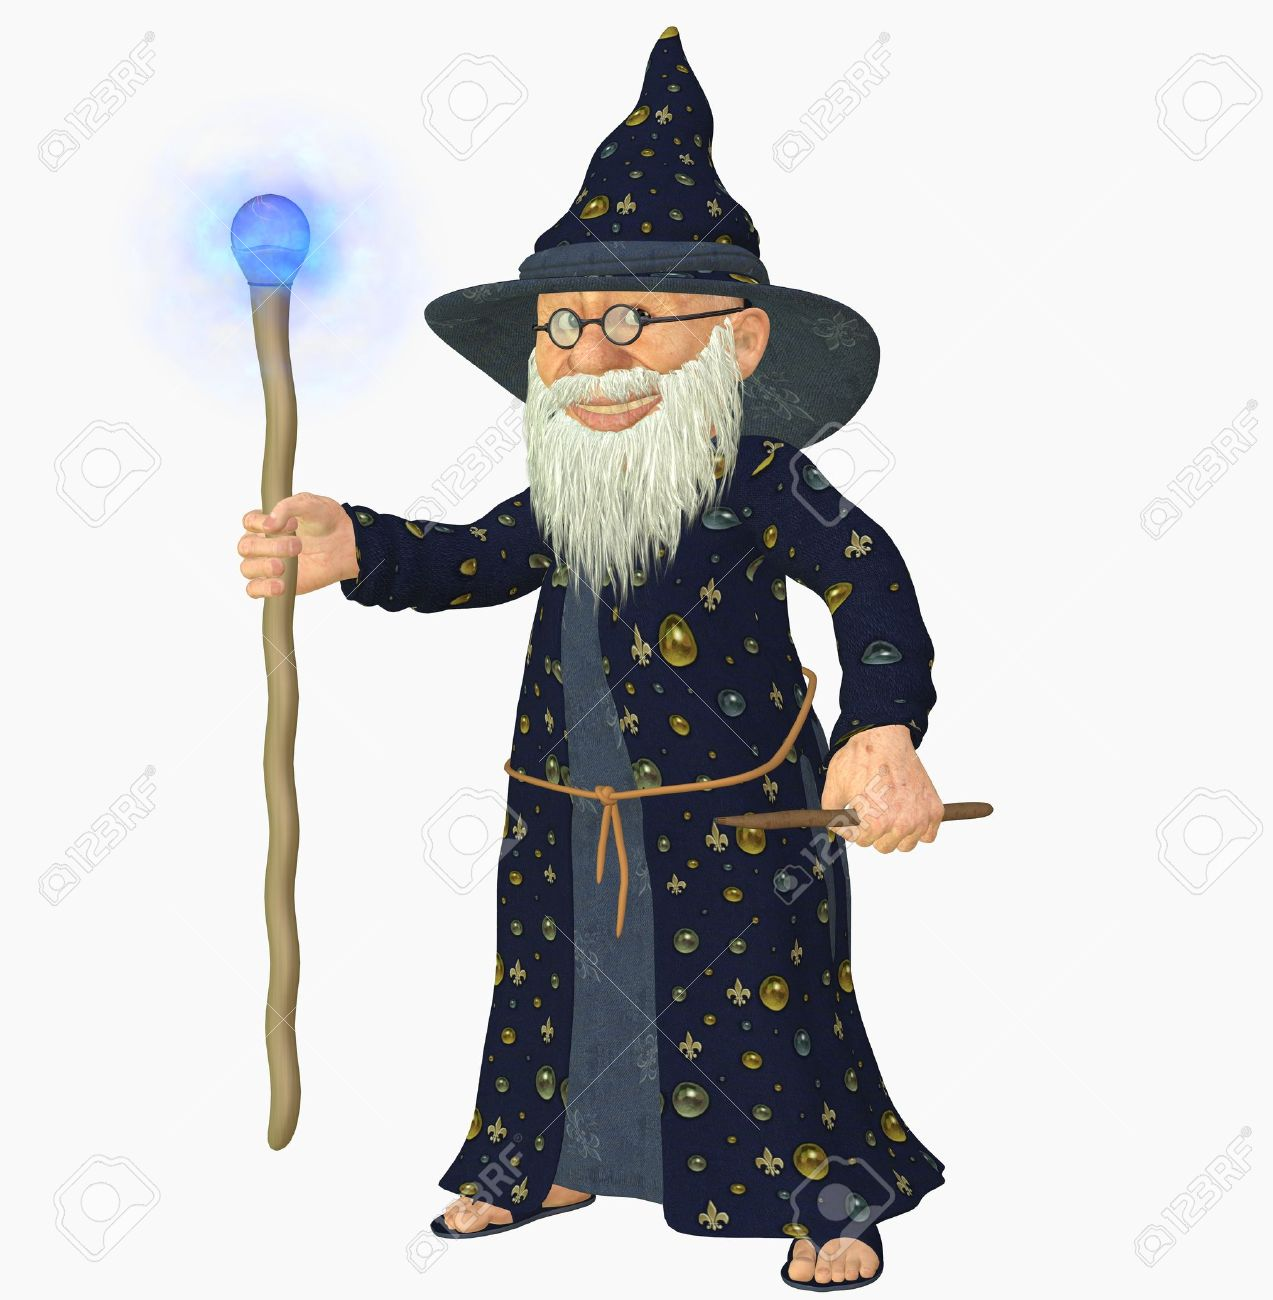 4,400 Wizard Wand Stock Illustrations, Cliparts And Royalty Free ...